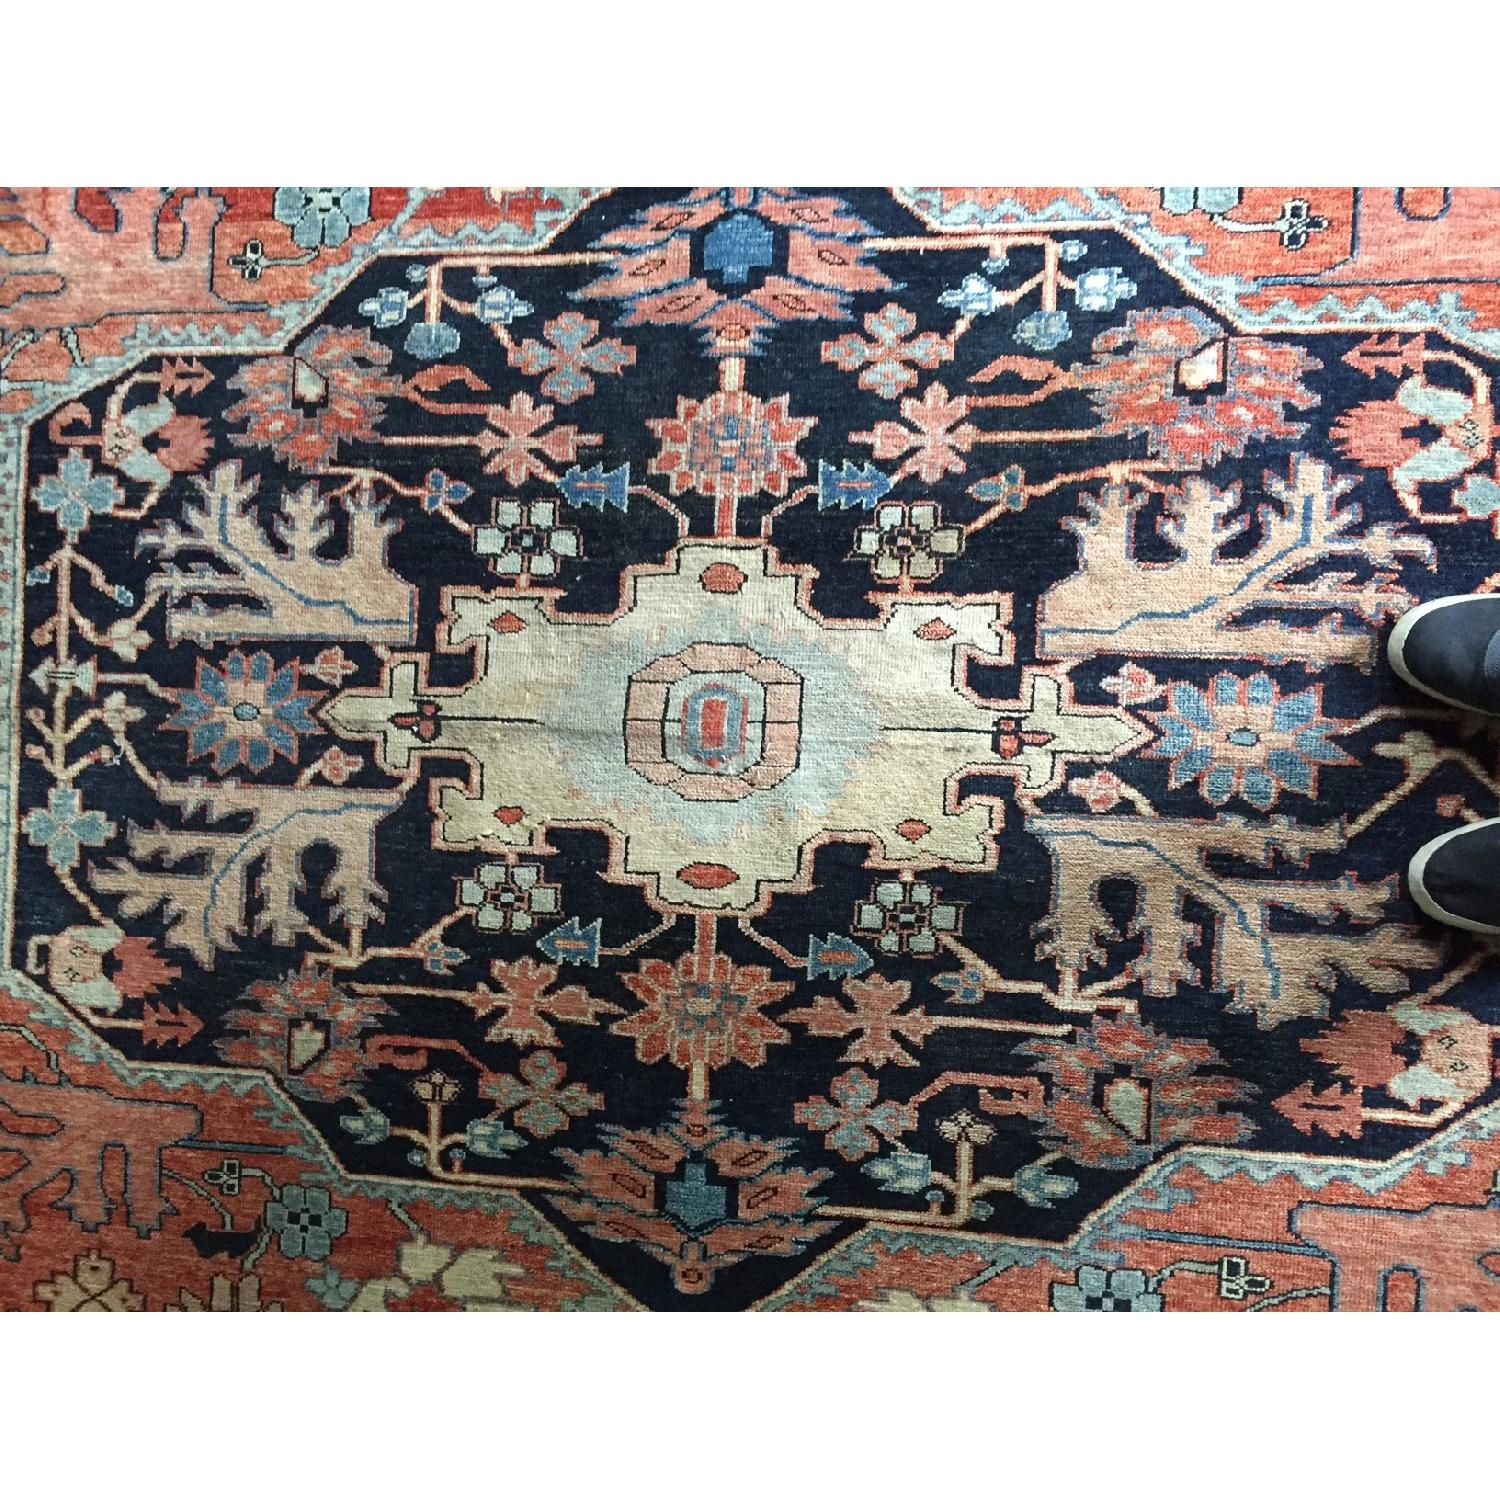 ABC Carpet & Home Woven Legends Turkish Rug - image-8